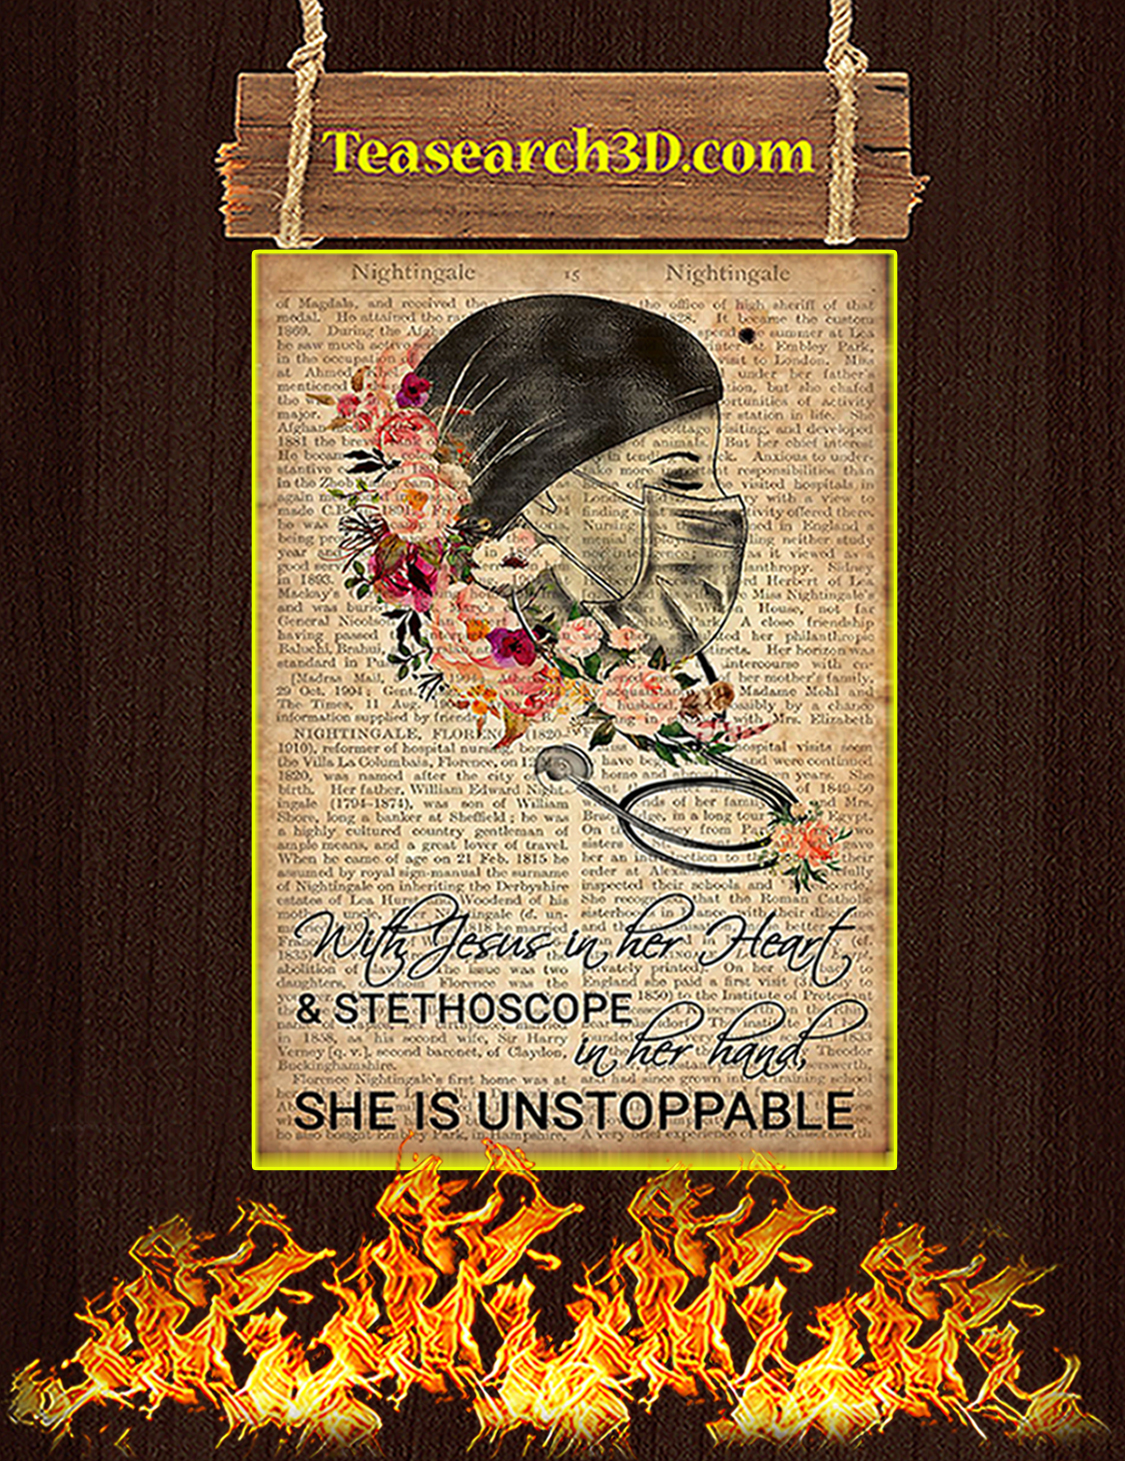 Nurse With Jesus in her heart she is unstoppable poster A3